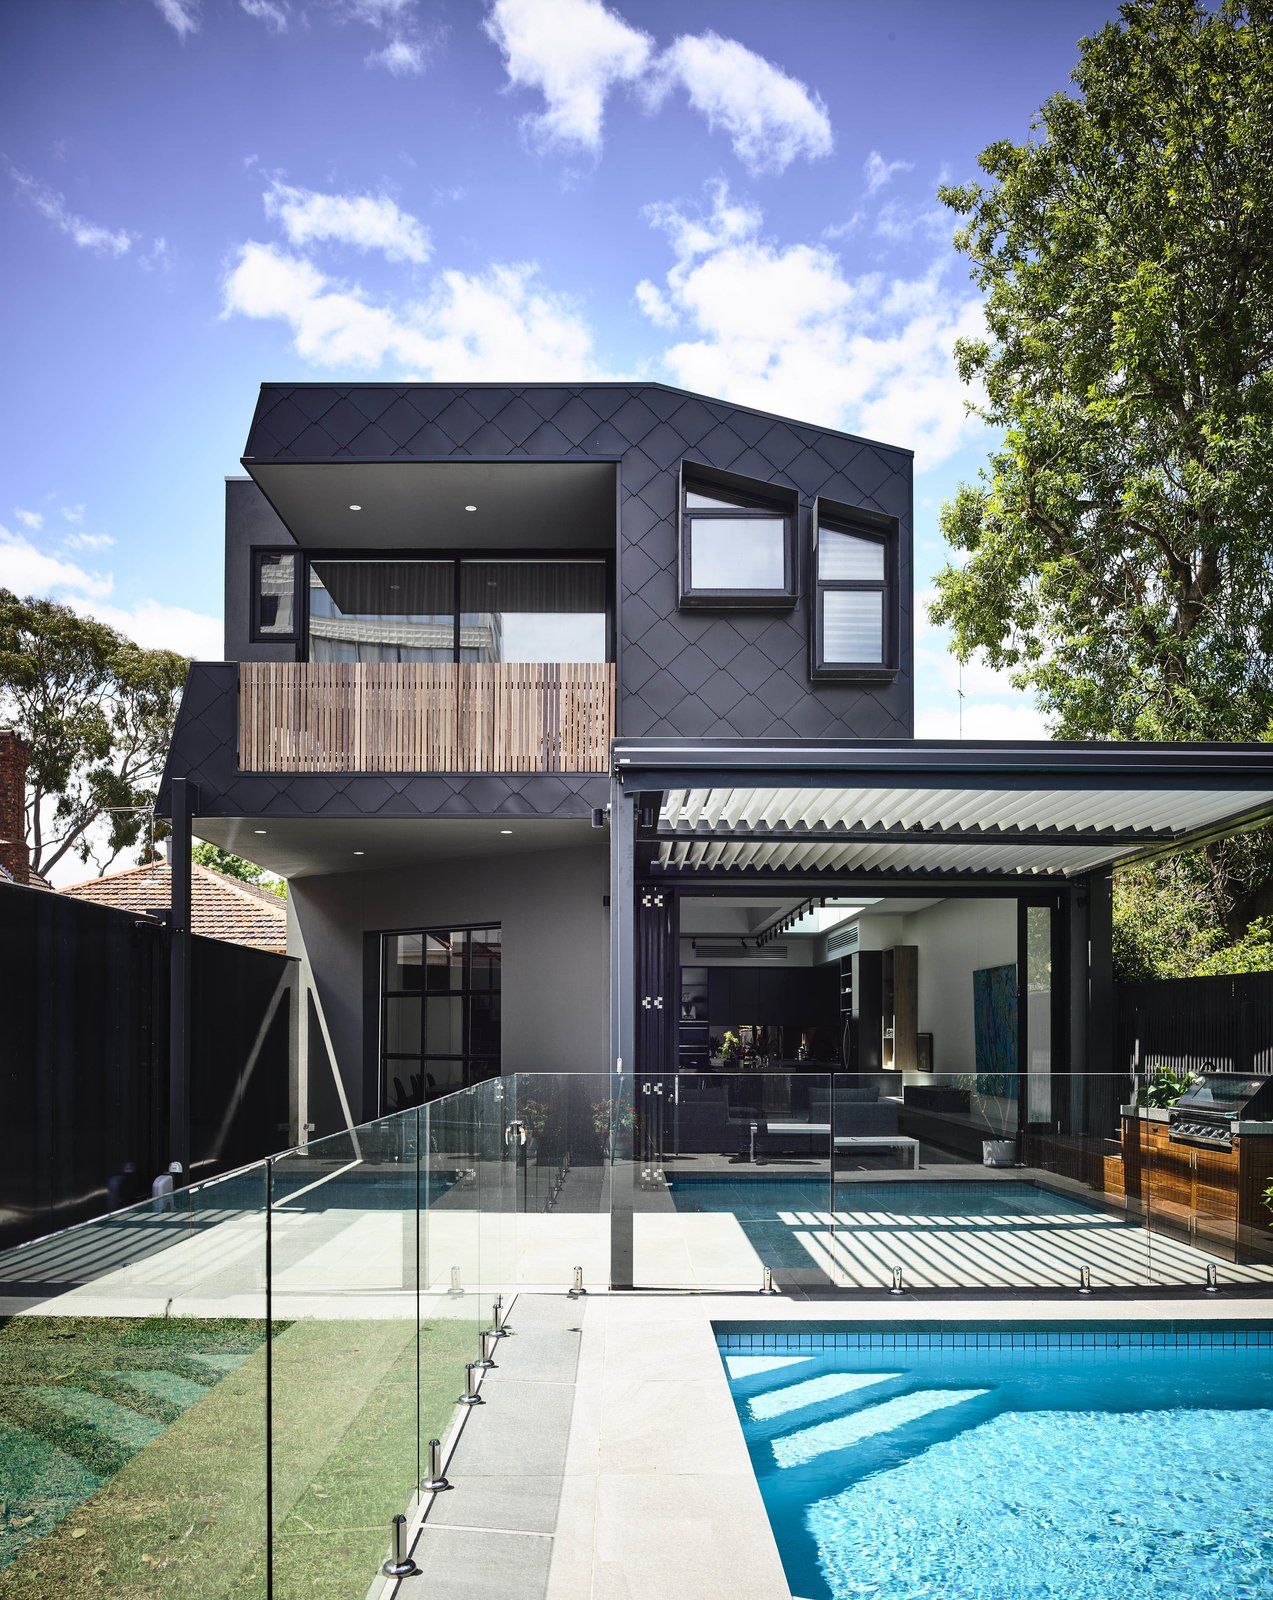 Swimming Pools, Tubs, Shower, Grass, Large Pools, Tubs, Shower, Back Yard, Exterior, House Building Type, and Metal Siding Material  Photo 3 of 4 in Top 4 Homes of the Week With Impressive Backyards from Saint Kilda West